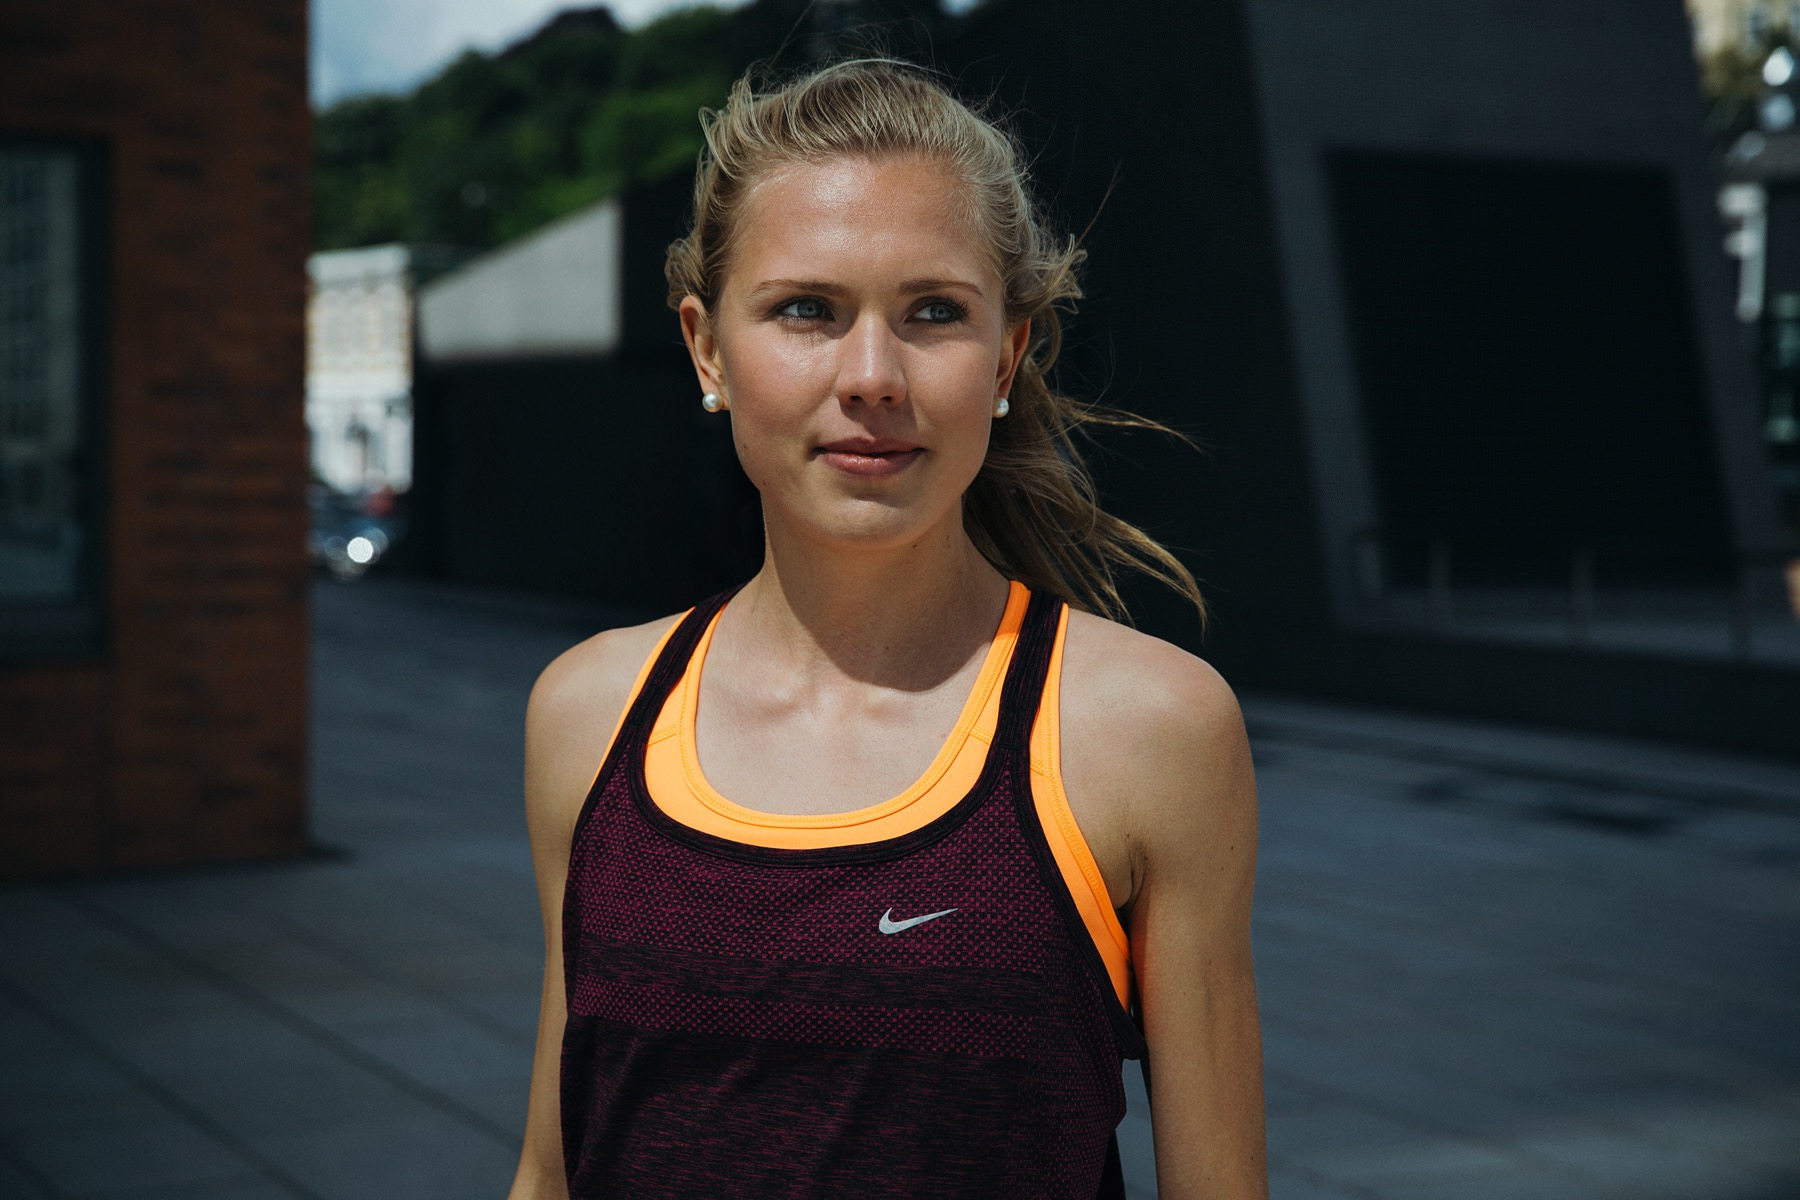 ­photo, photos, photography, photographer, photographers, woman, women, blonde, nike, athletic, athletic wear, sportswear, shadow, daylight, natural light, blur, blurred background